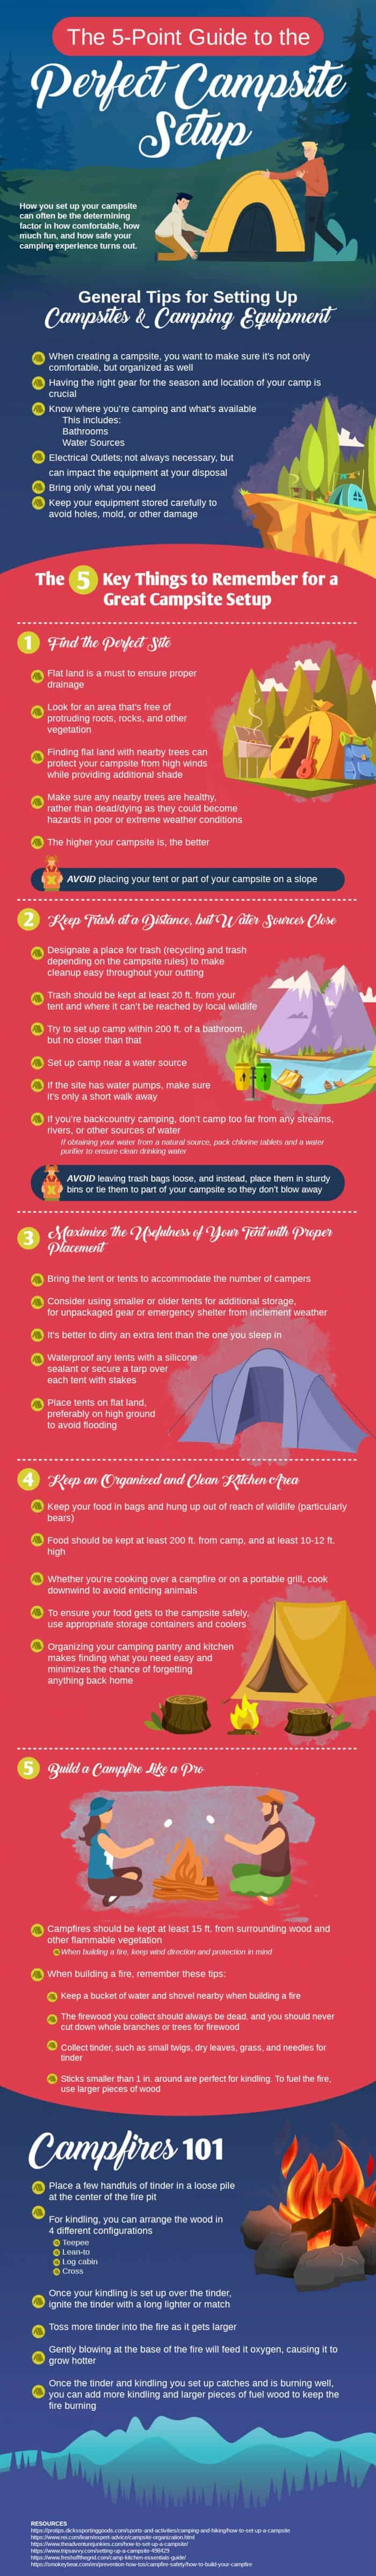 how to choose, set up and maintain the best possible campsite